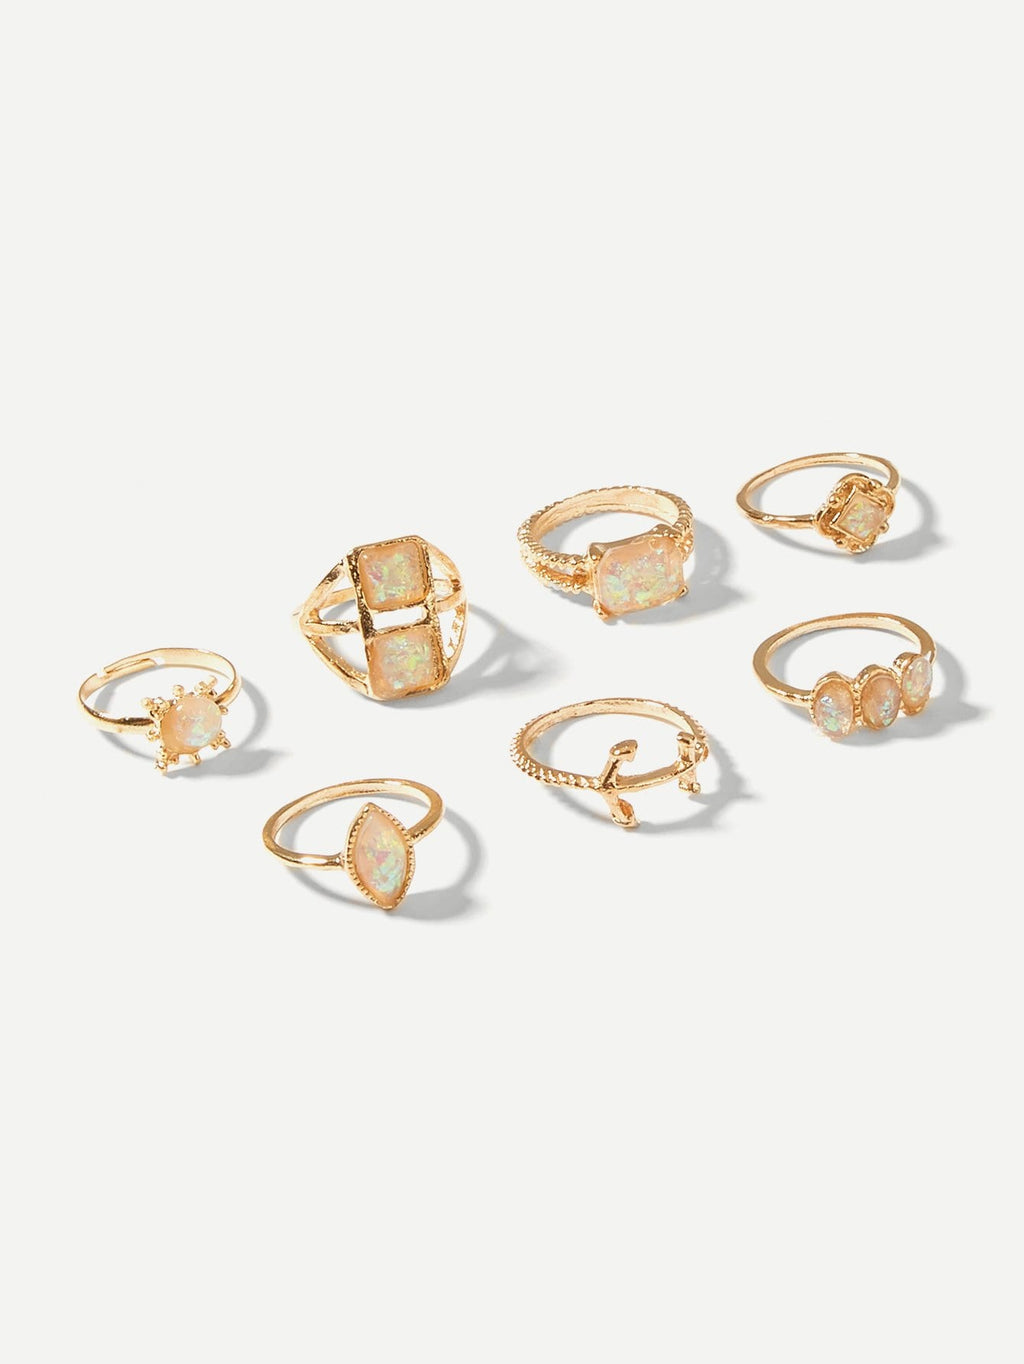 Anchor & Geometric Gemstone Ring Set 7pcs